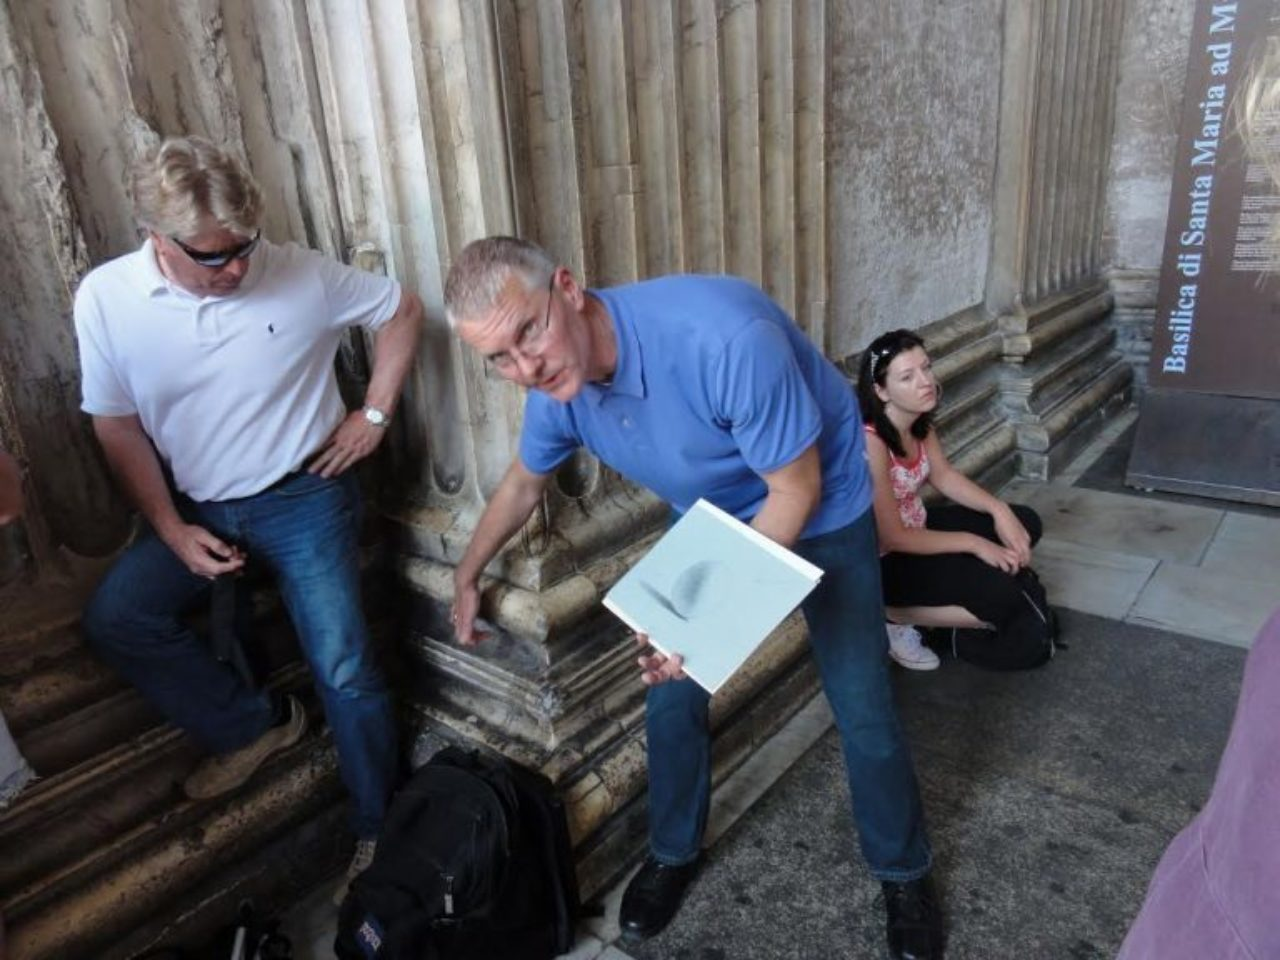 "Fellow Emeritus John Woodrow Kelley giving a lecture in the Portico of the Pantheon in Rome on the basics of light and shadow for the 2010 Rome drawing tour. ""That morning some of the students requested some instruction on the subject, so during the lunch break I prepared some demonstration drawings and used the plinth and torus of one of the pilasters in the Pantheon portico as a study model,"" John reminisced."